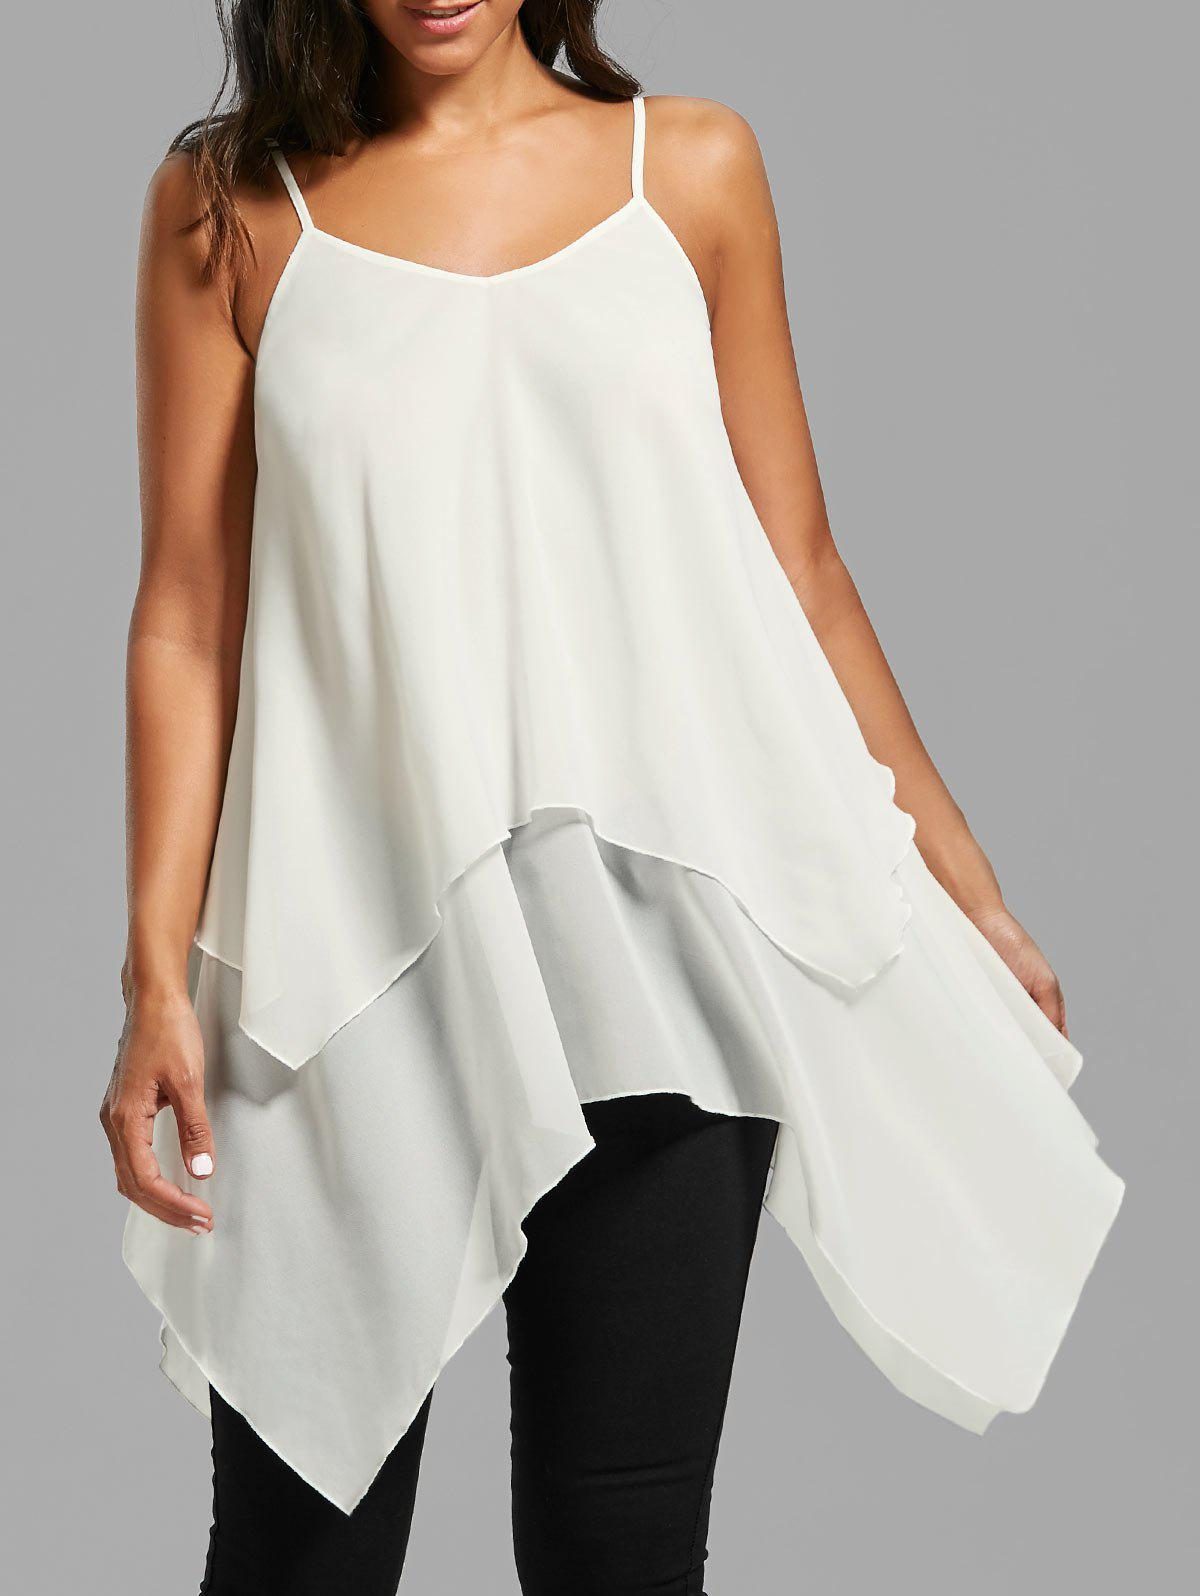 Buy the latest flowy white tank top cheap shop fashion style with free shipping, and check out our daily updated new arrival flowy white tank top at reasonarchivessx.cf